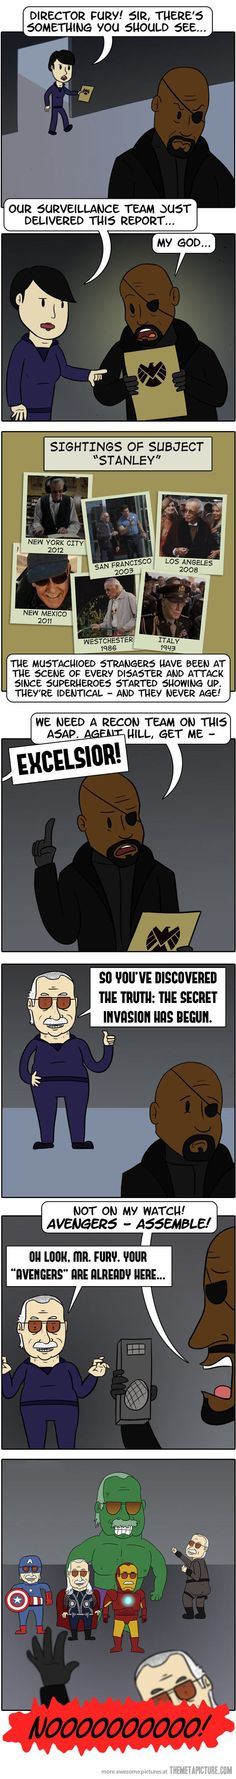 Horrible secret behind every Stan Lee cameo… hahaha this is great!